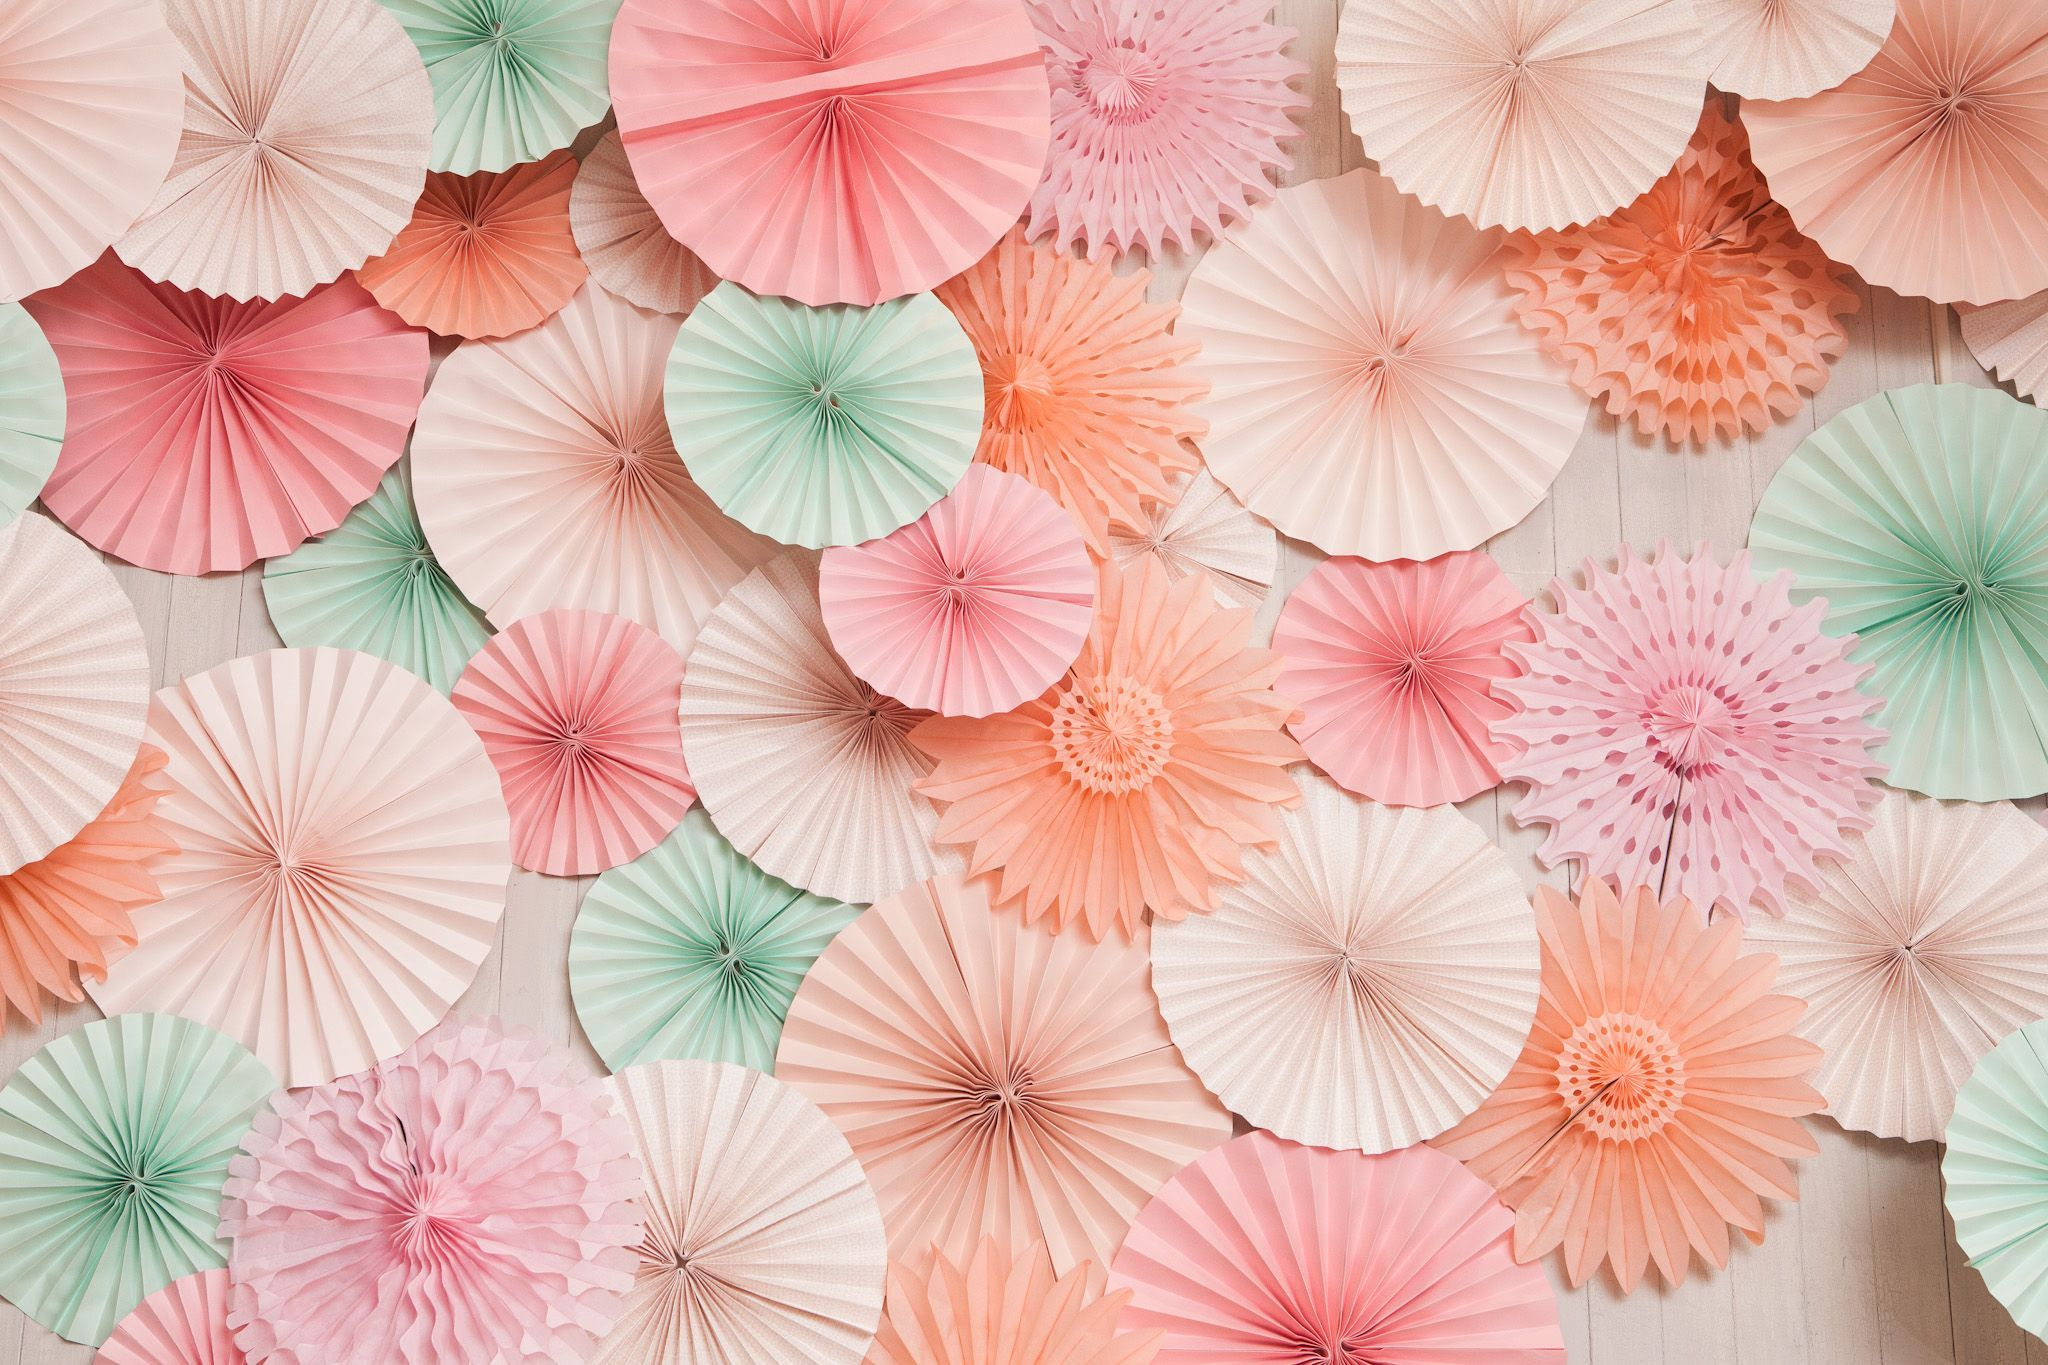 Mint And Coral Colored Paper Art Wallpaper - Coral Color Wallpaper Hd - HD Wallpaper